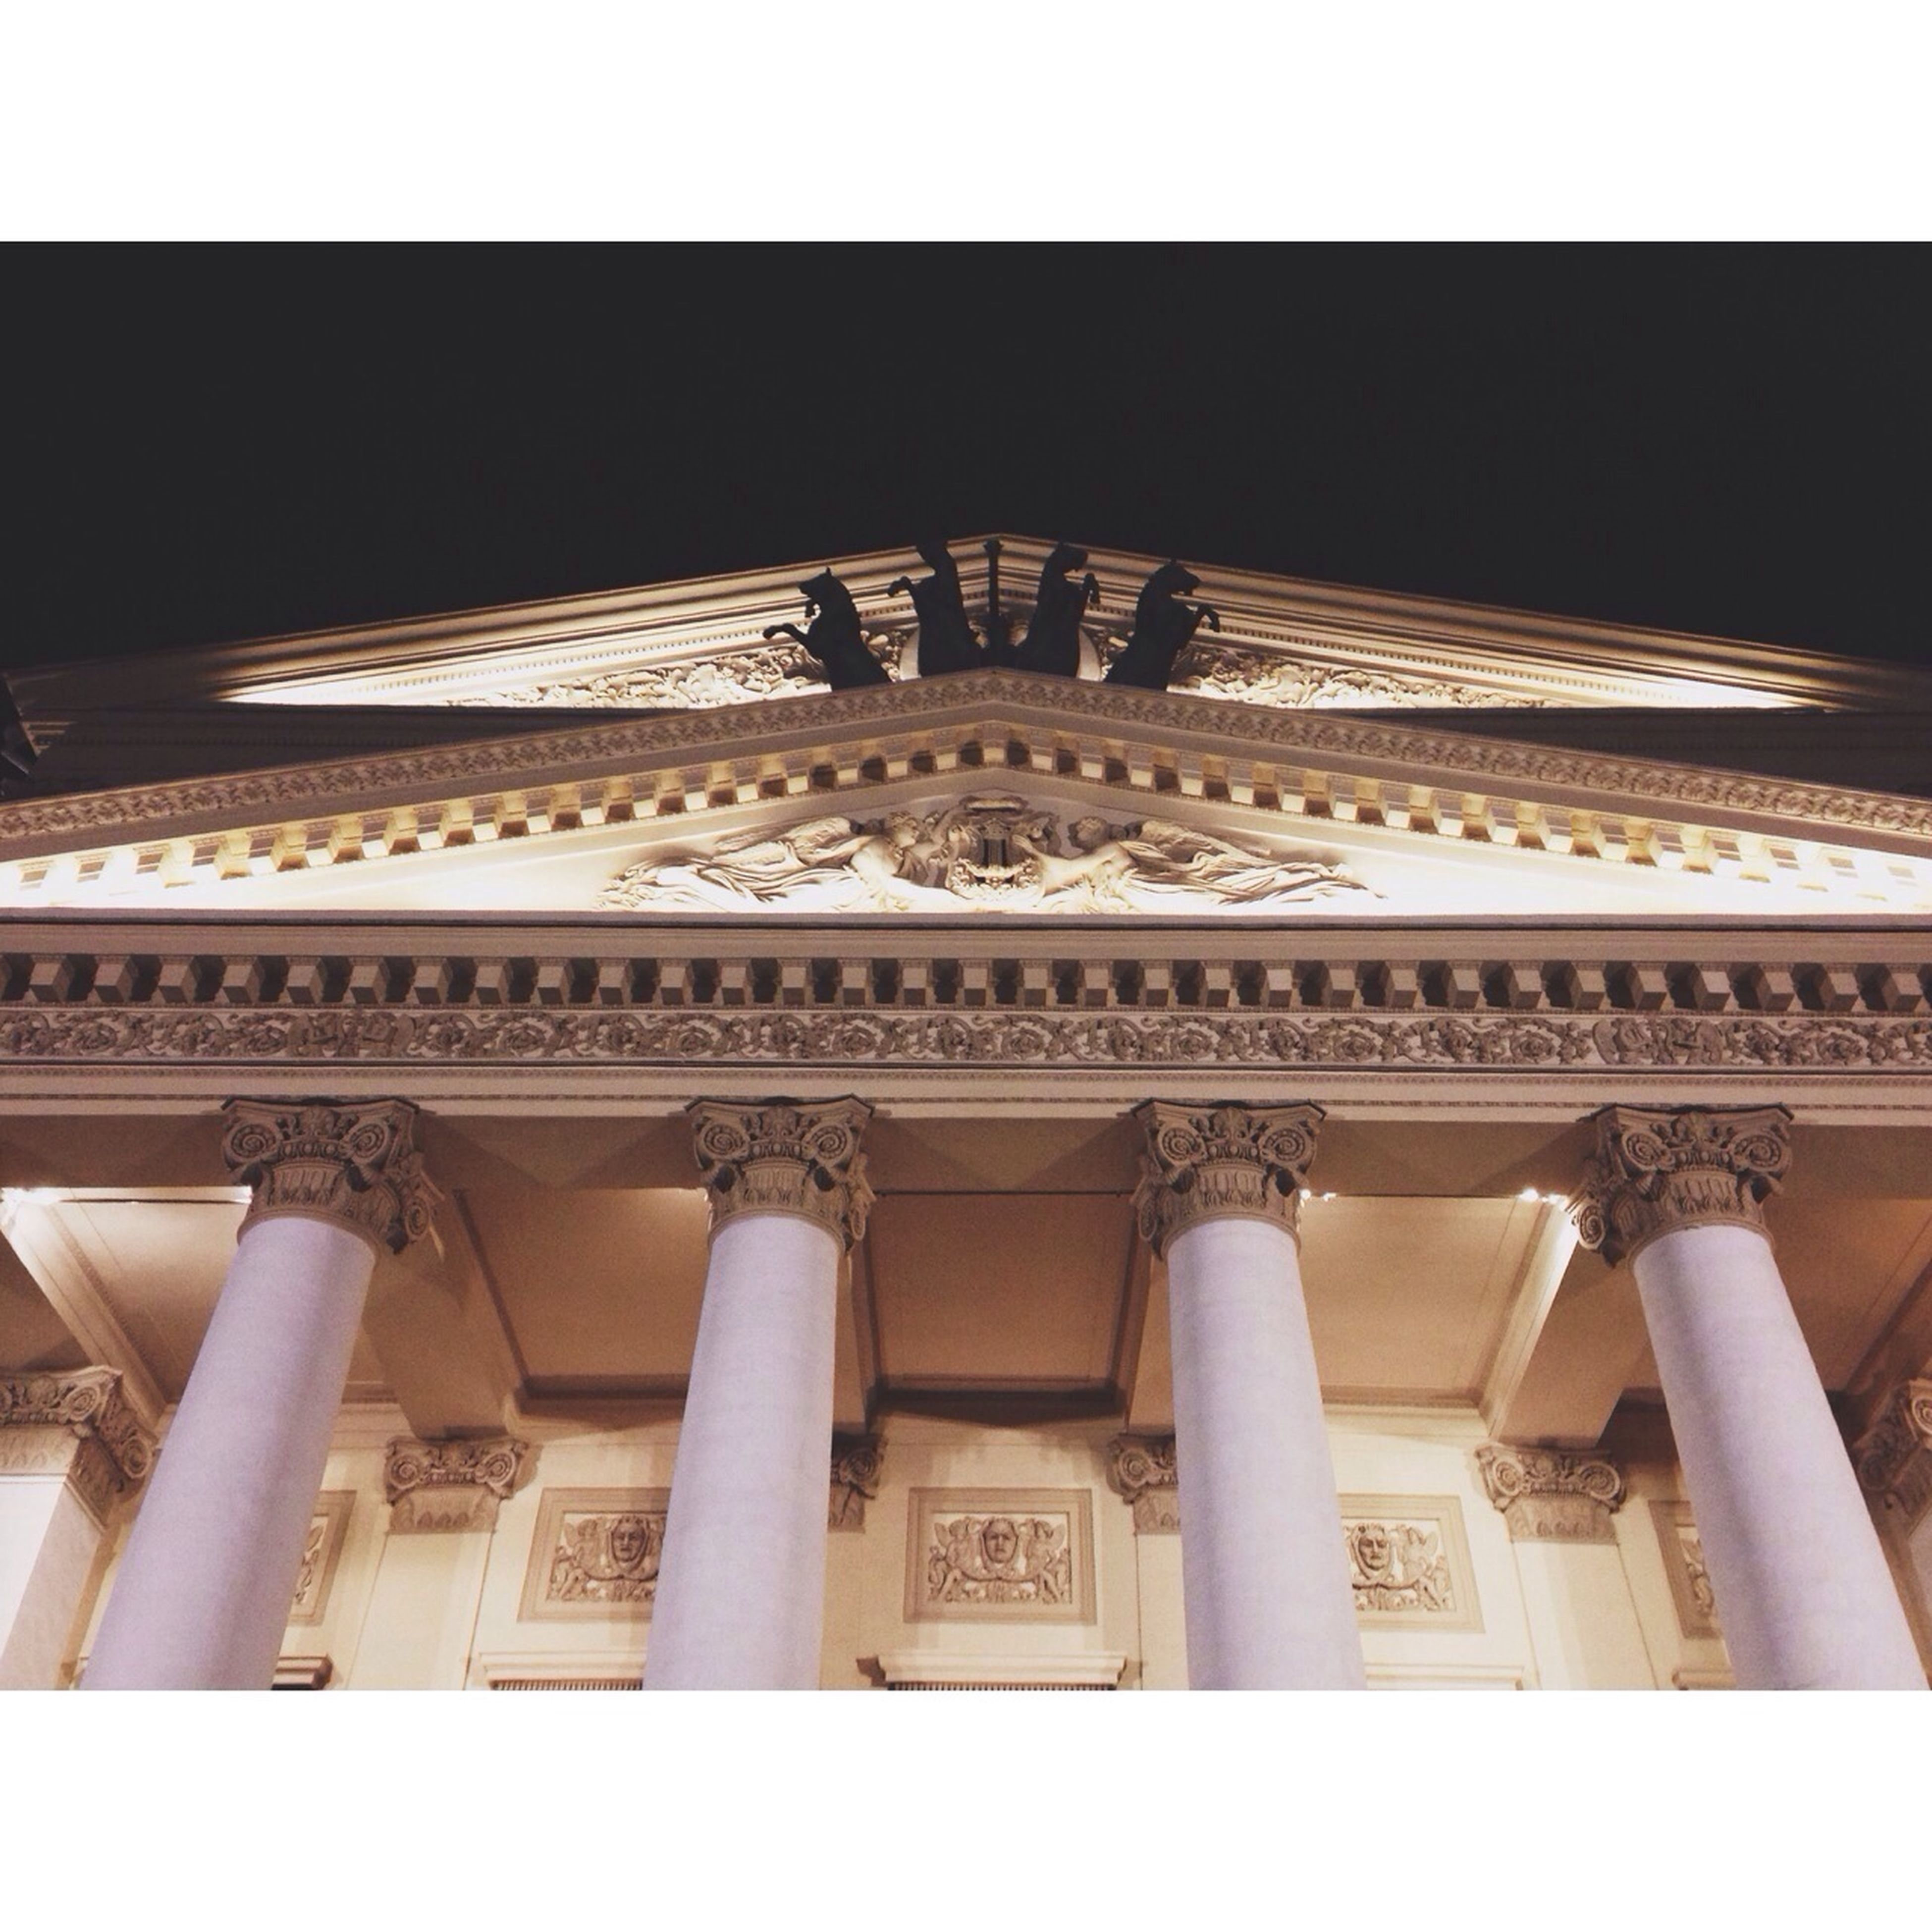 architecture, built structure, low angle view, building exterior, history, architectural column, transfer print, famous place, travel destinations, column, auto post production filter, tourism, art and craft, religion, international landmark, travel, architectural feature, ornate, carving - craft product, capital cities